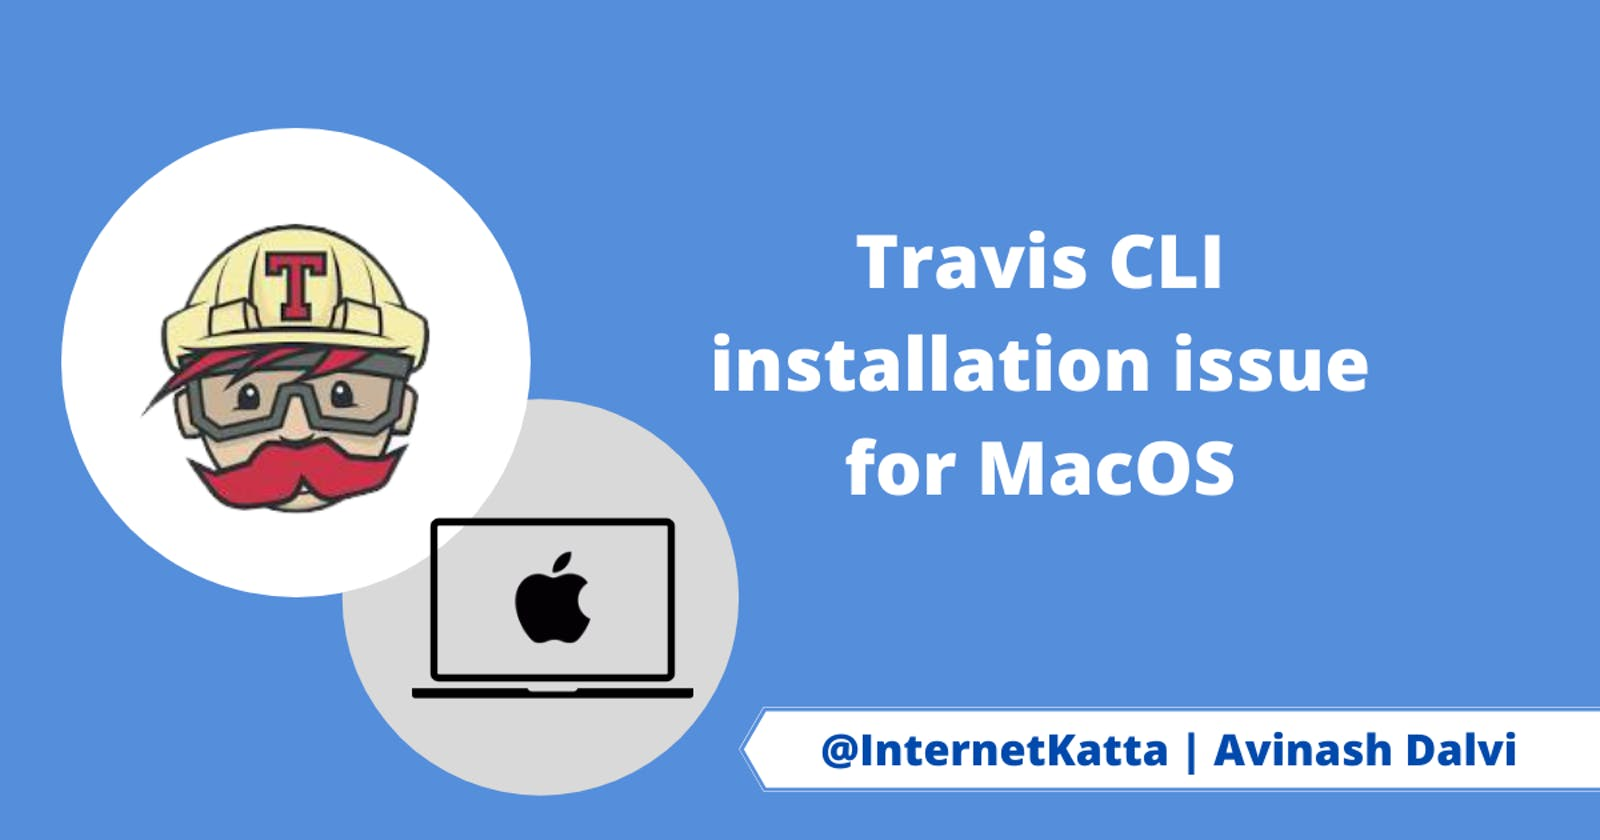 Travis CLI installation issue for MacOS